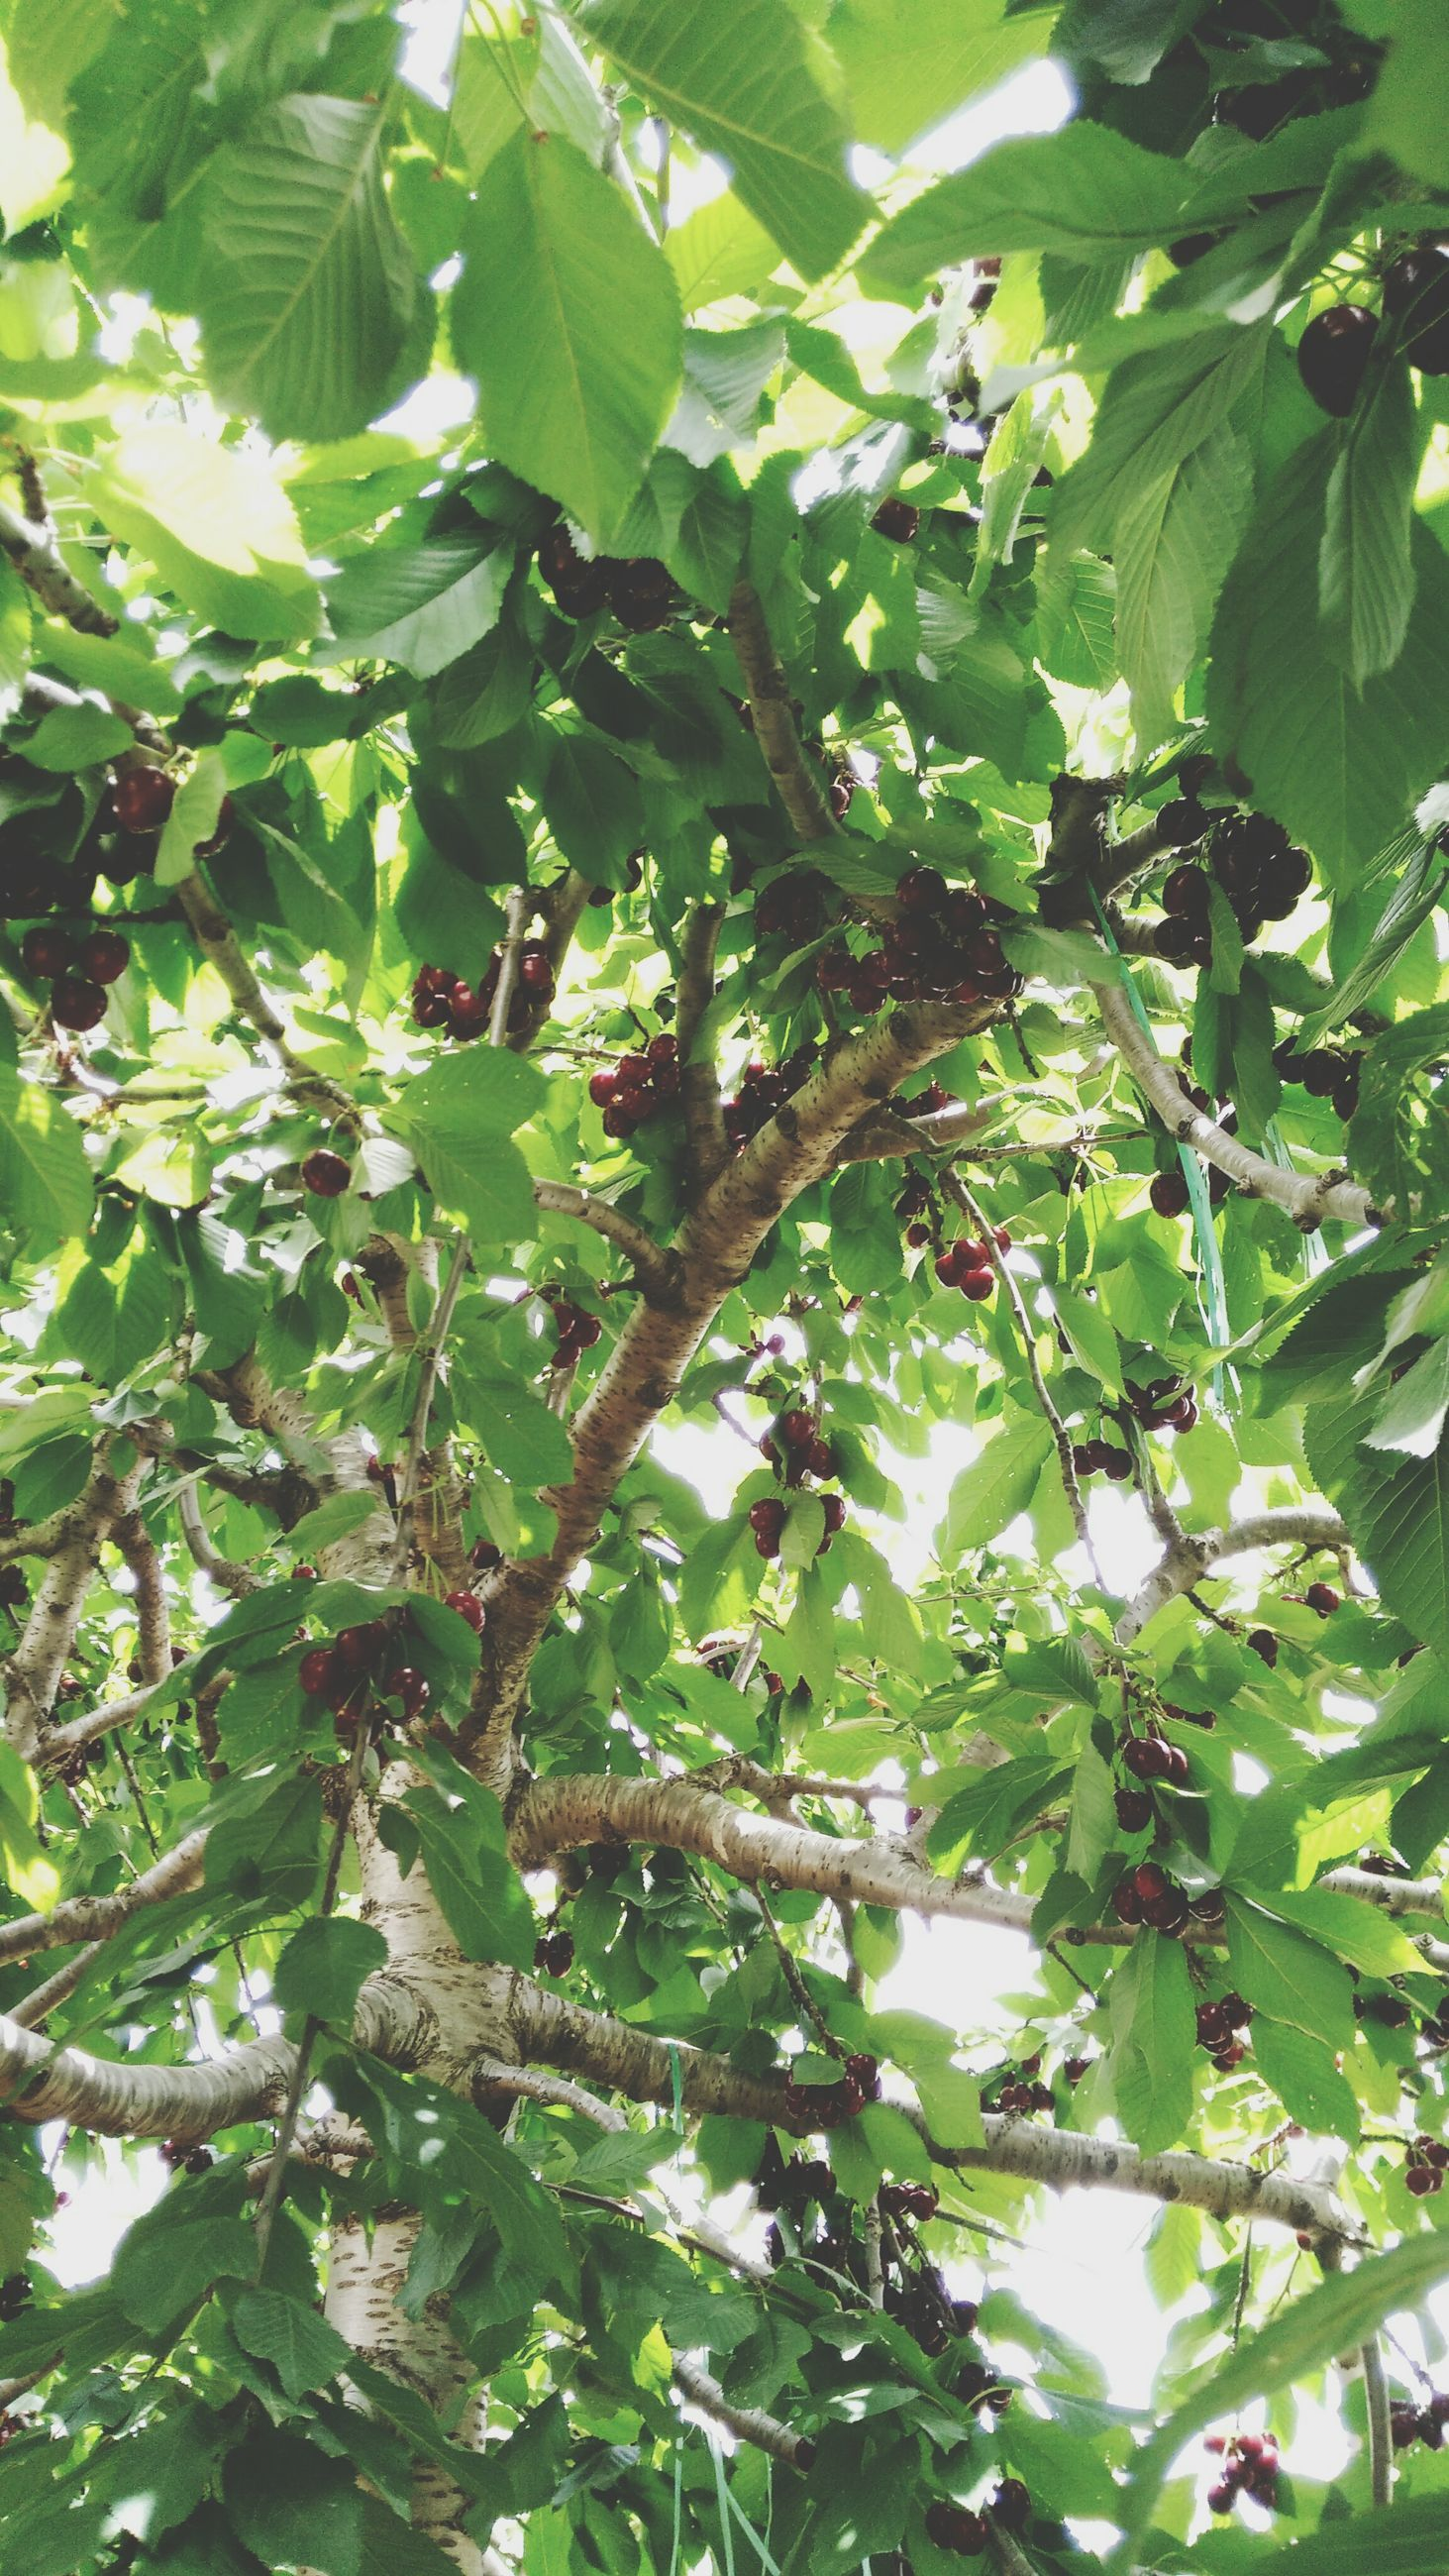 growth, low angle view, tree, nature, leaf, fruit, green color, branch, no people, backgrounds, beauty in nature, full frame, outdoors, freshness, food and drink, food, day, close-up